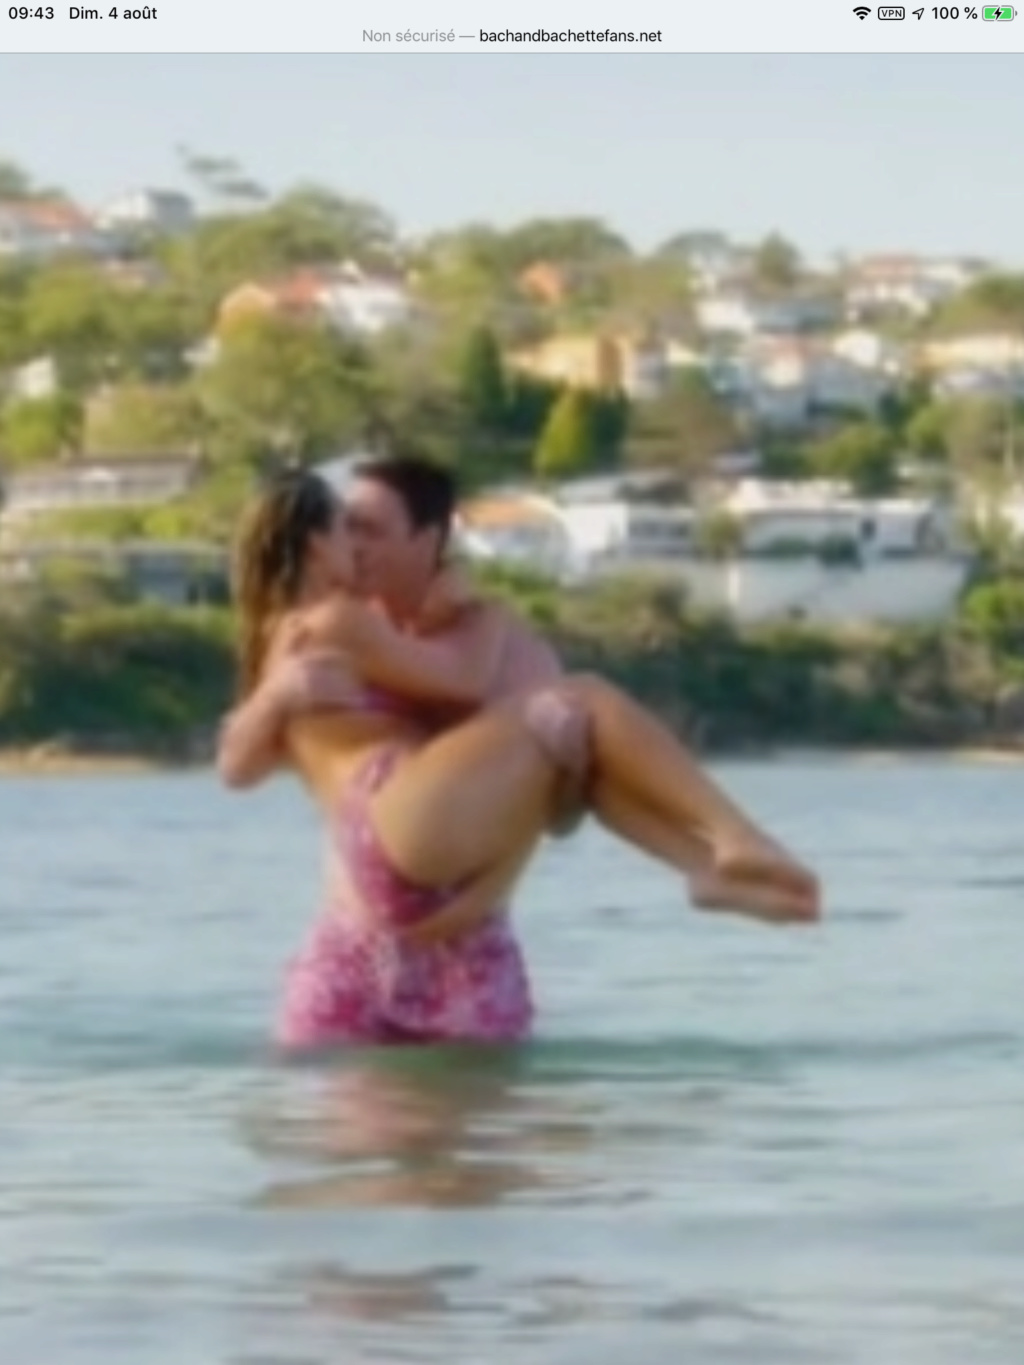 Bachelor Australia - Season 7 - Matt Agnew - S/Caps - *NO SPOILERS SLEUTHING* - * Discussion* - Page 2 3aaf5a10